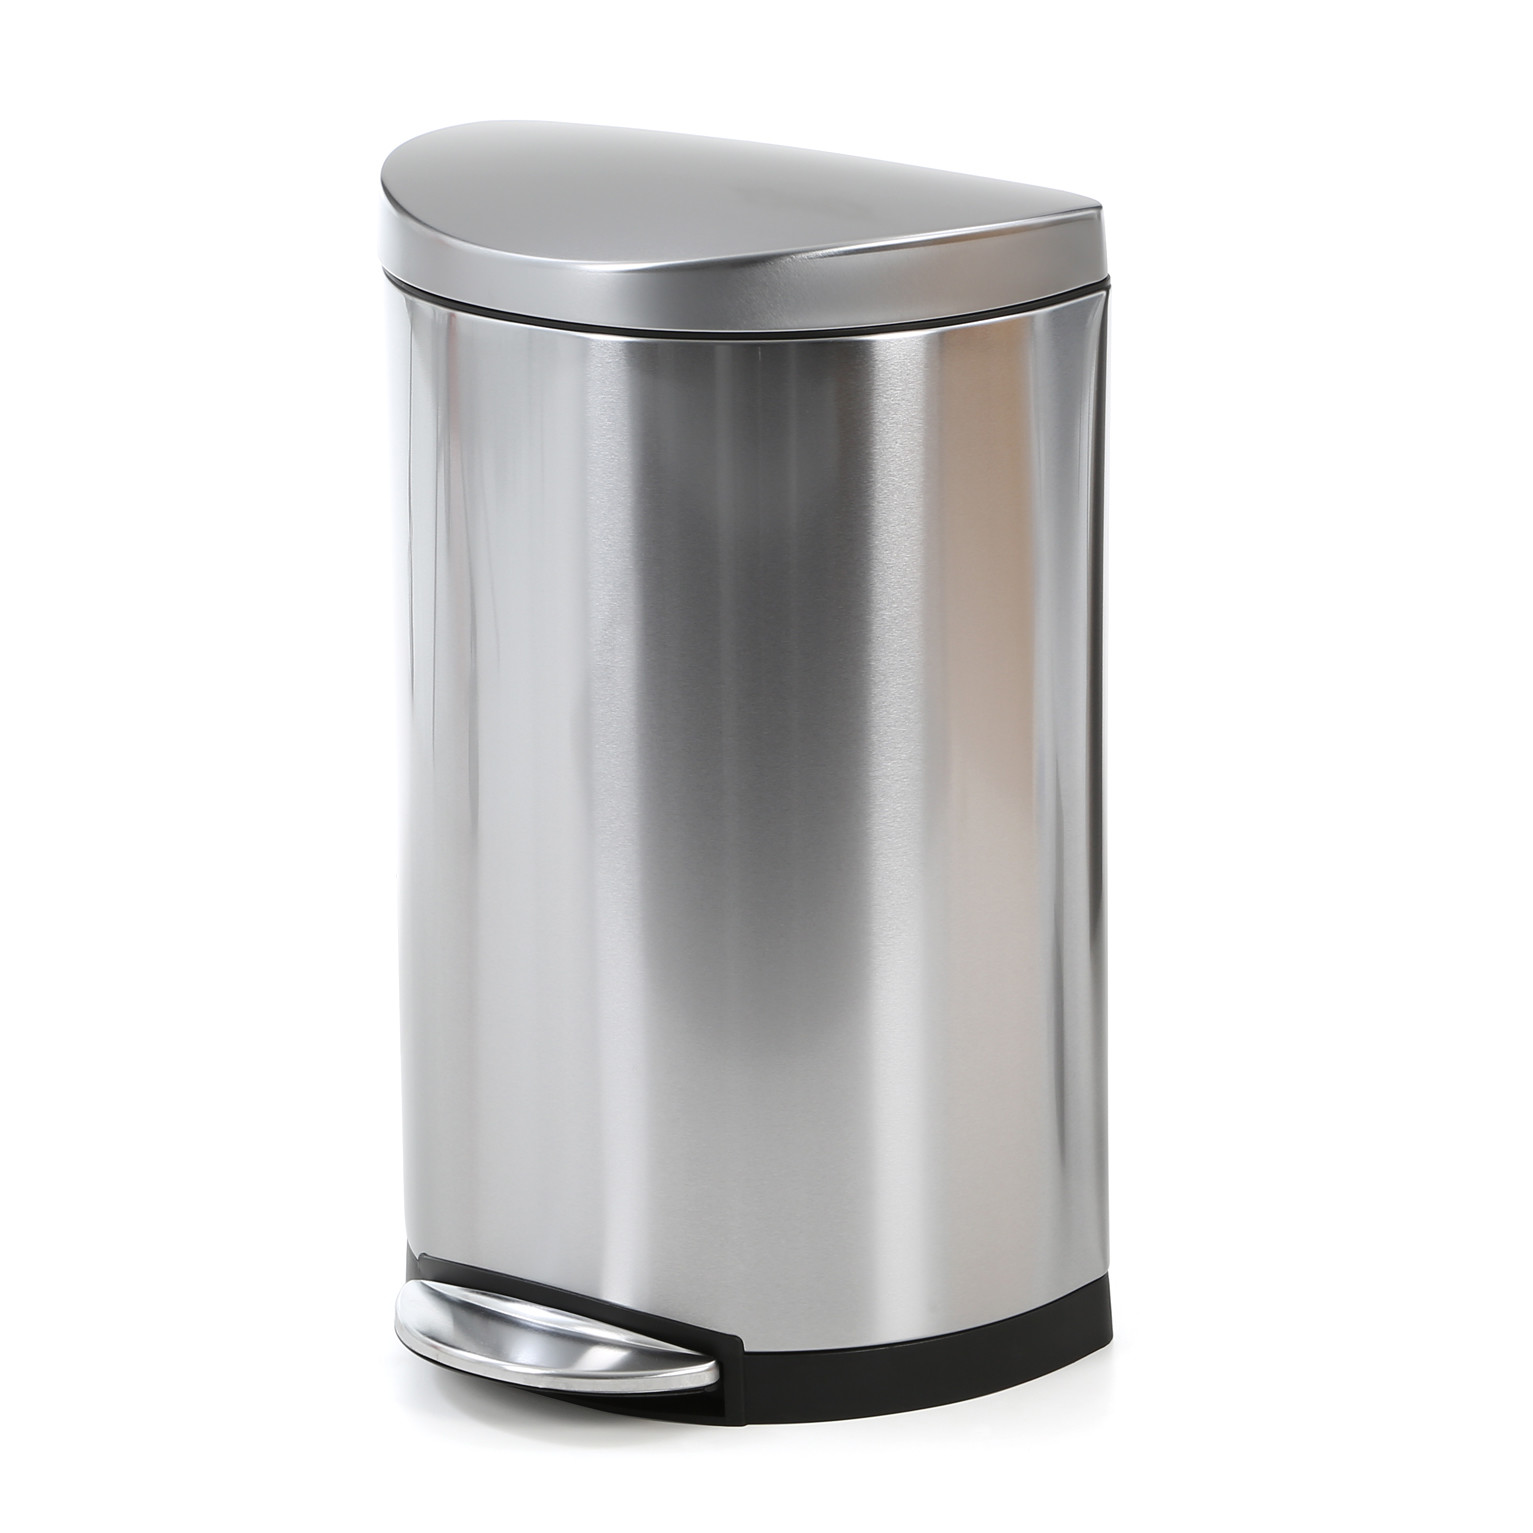 Simplehuman Recycler | Amazon Stainless Steel Trash Can | Simplehuman Recycling Bin